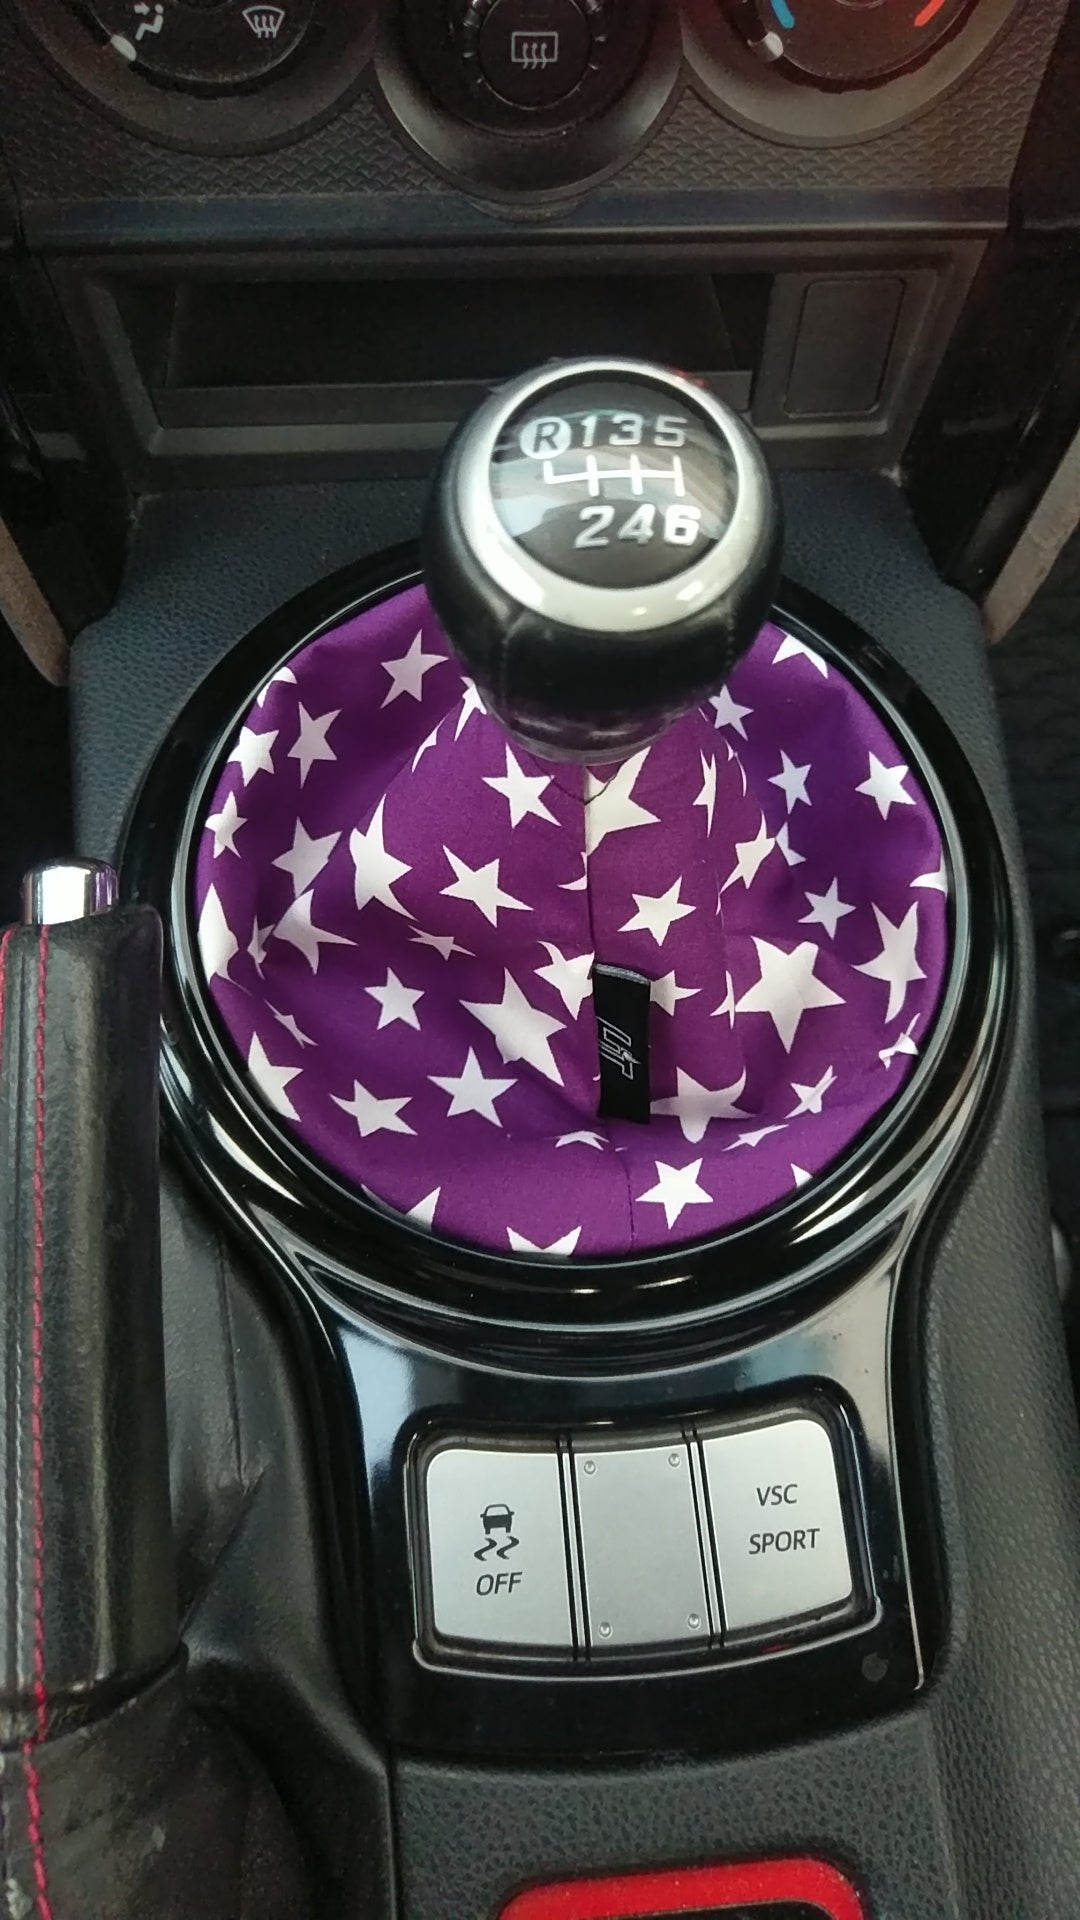 The Plum Stars Shift Boot